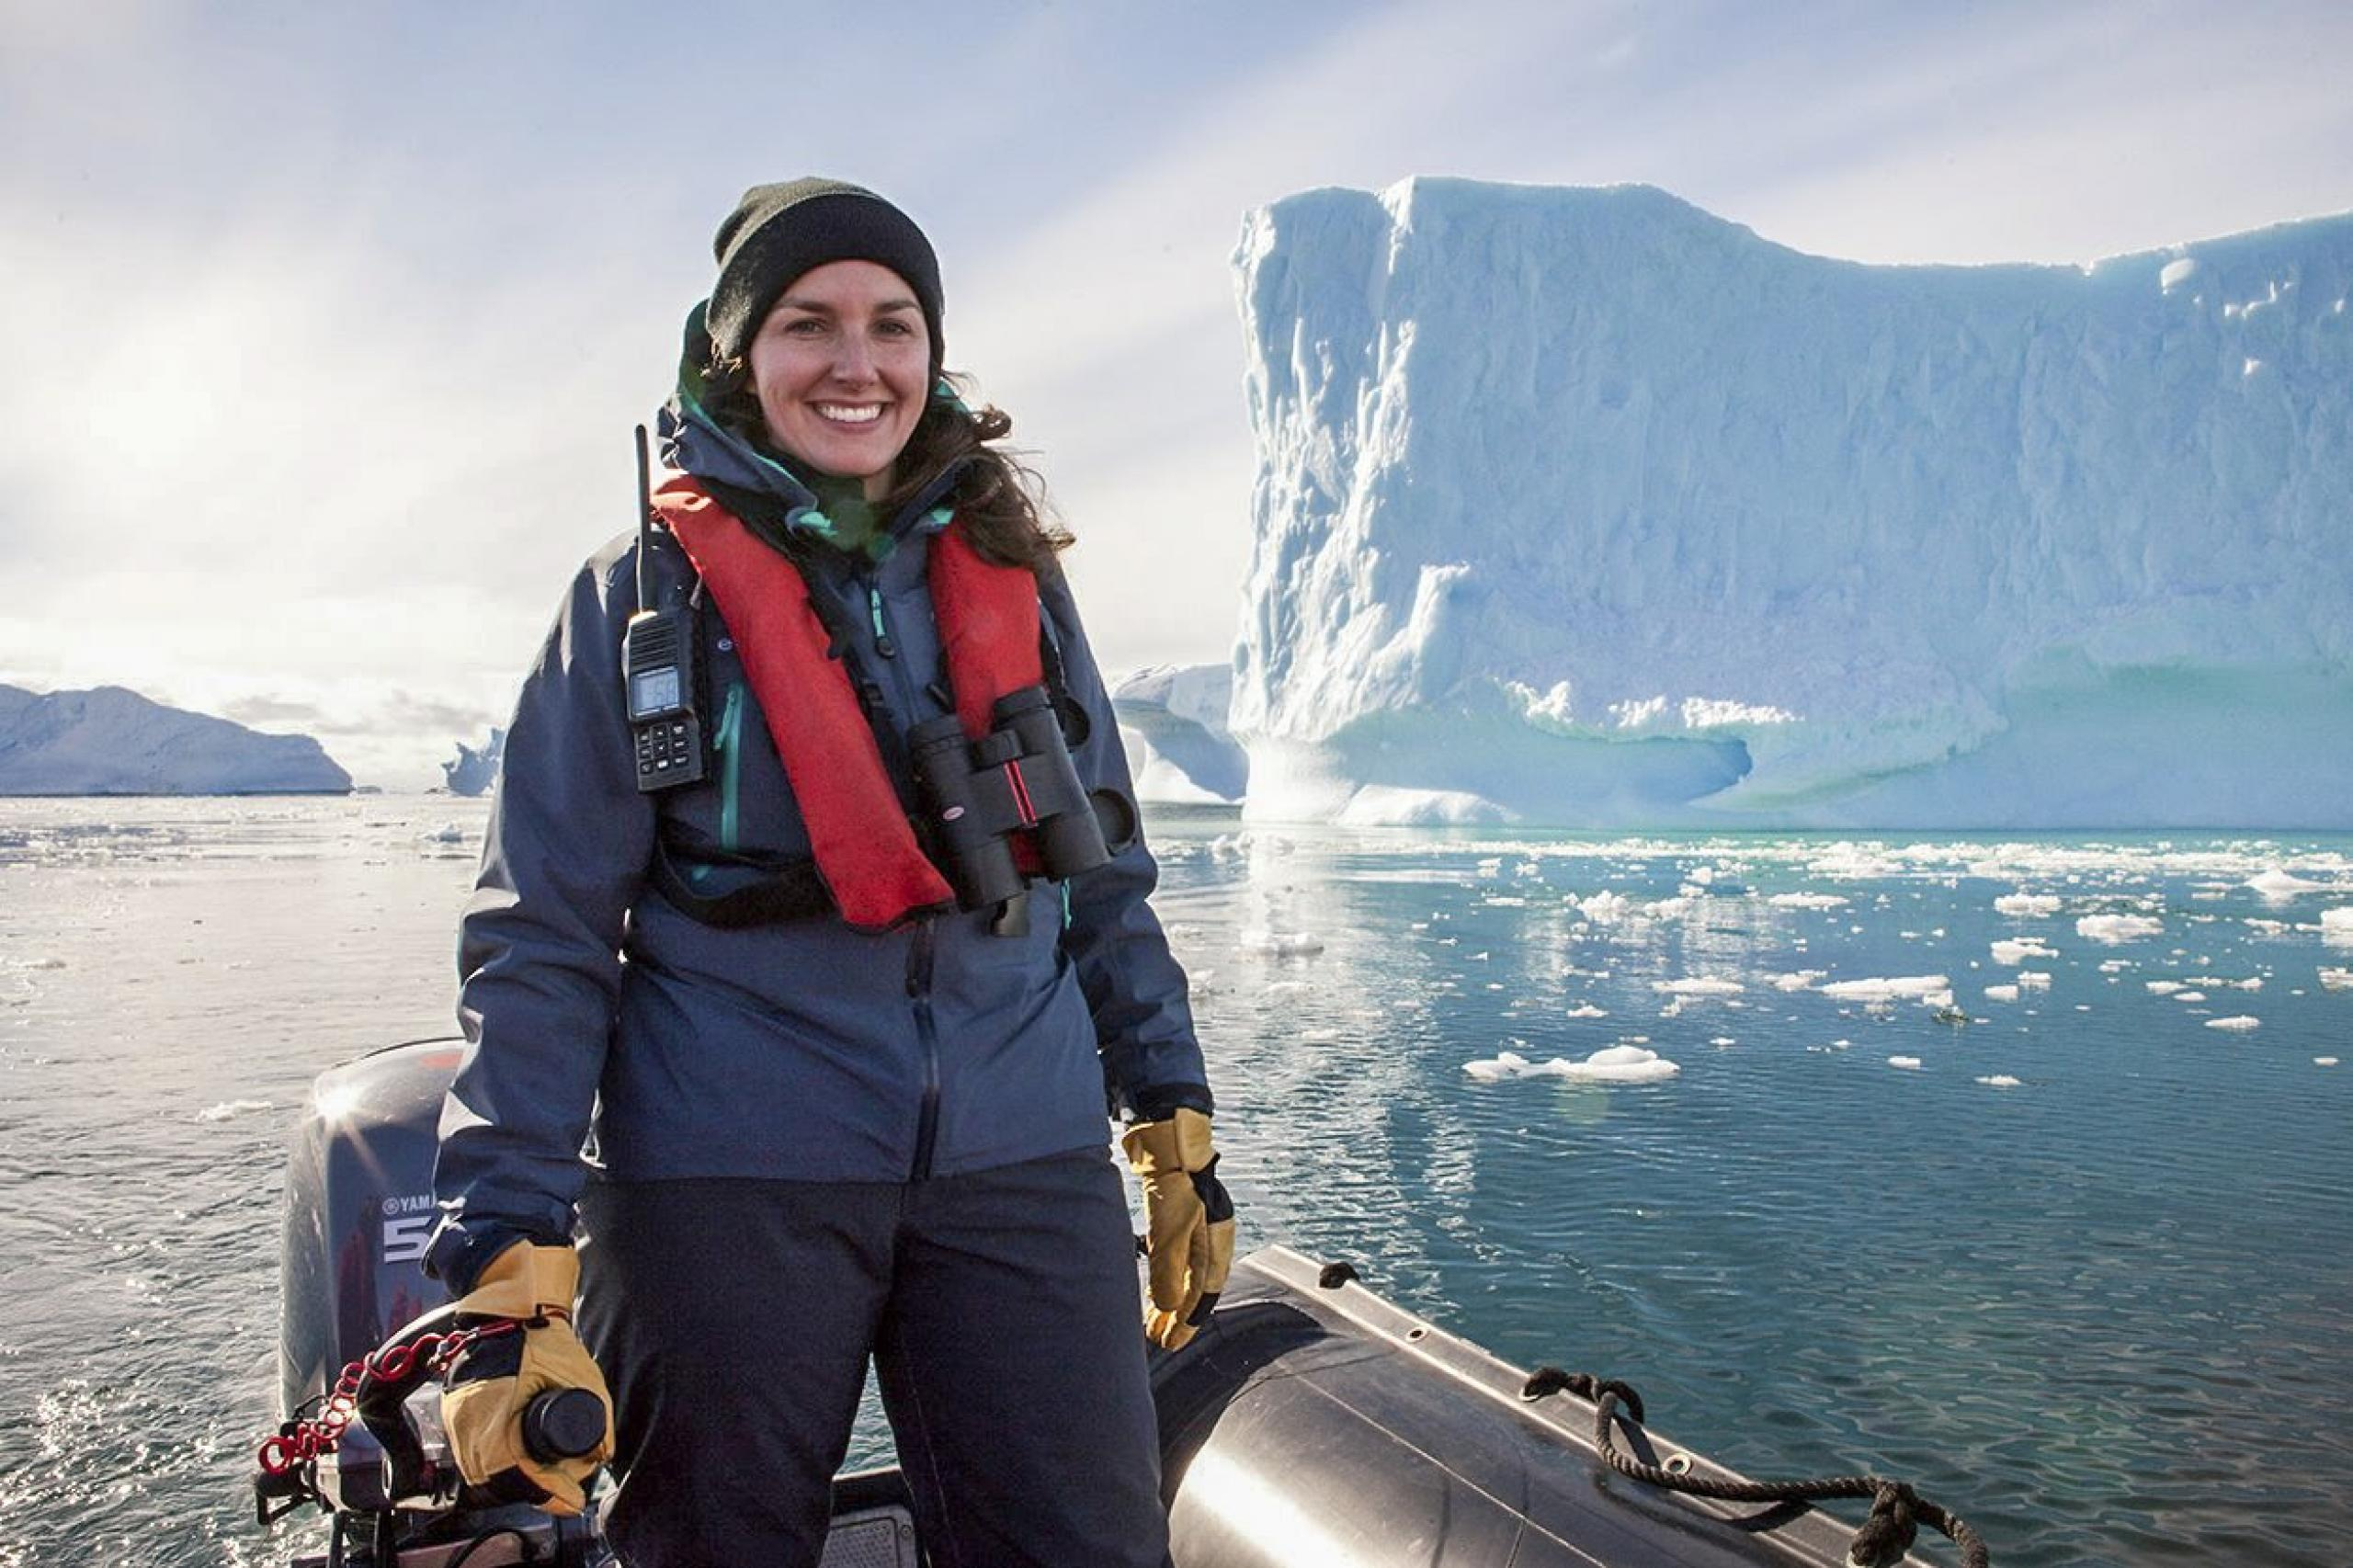 Photograph of woman dressed in winter gear standing in a boat with a large glacier in the distance behind her